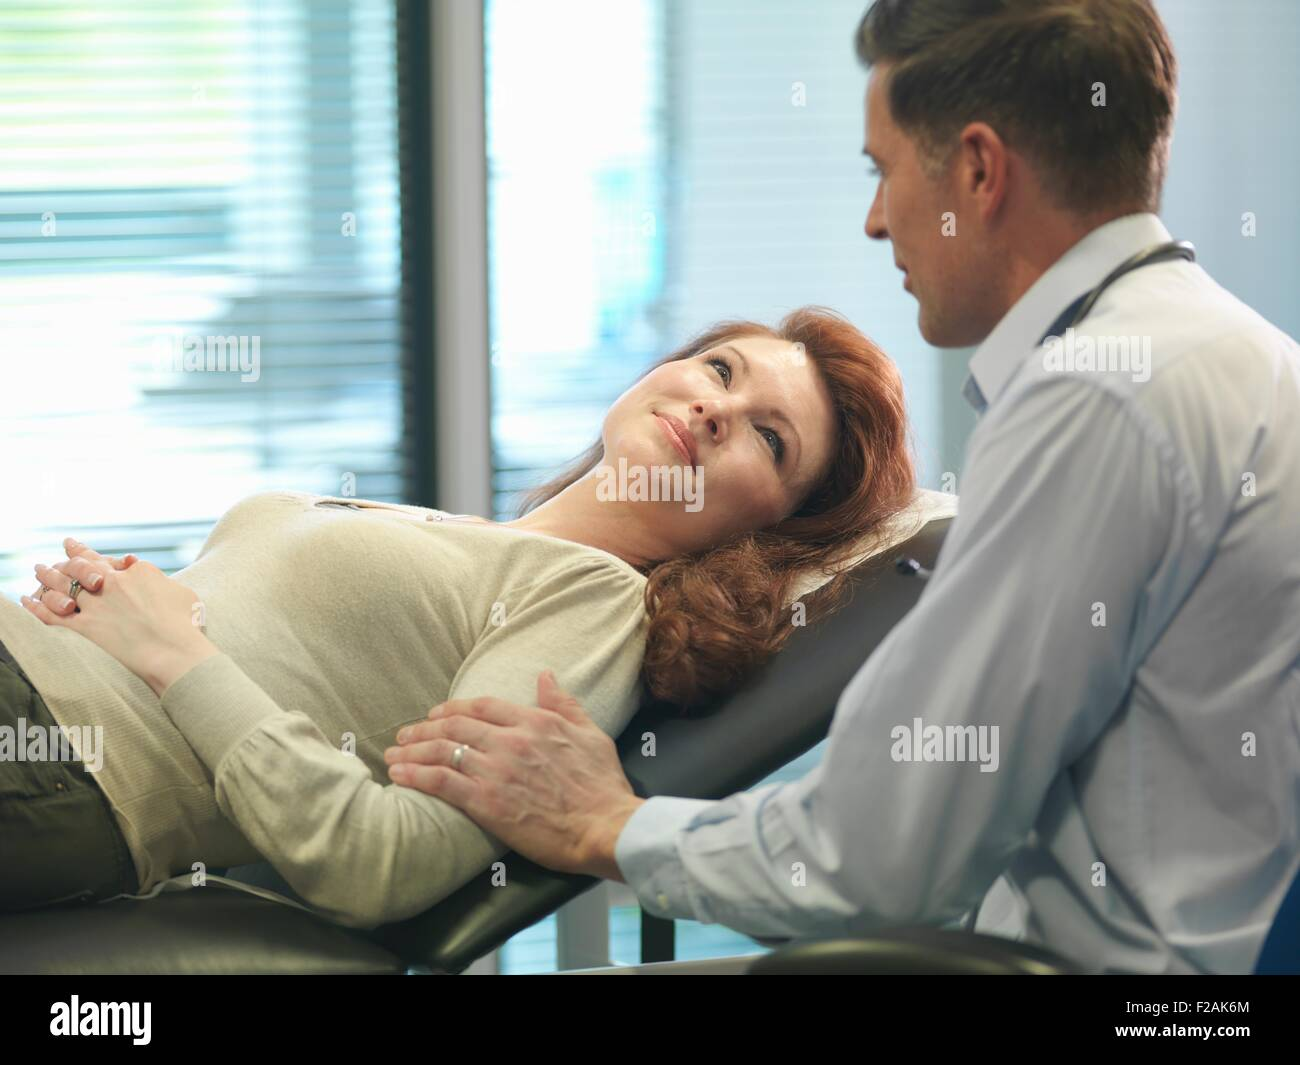 Orthopaedic consultant with patient in consulting room - Stock Image